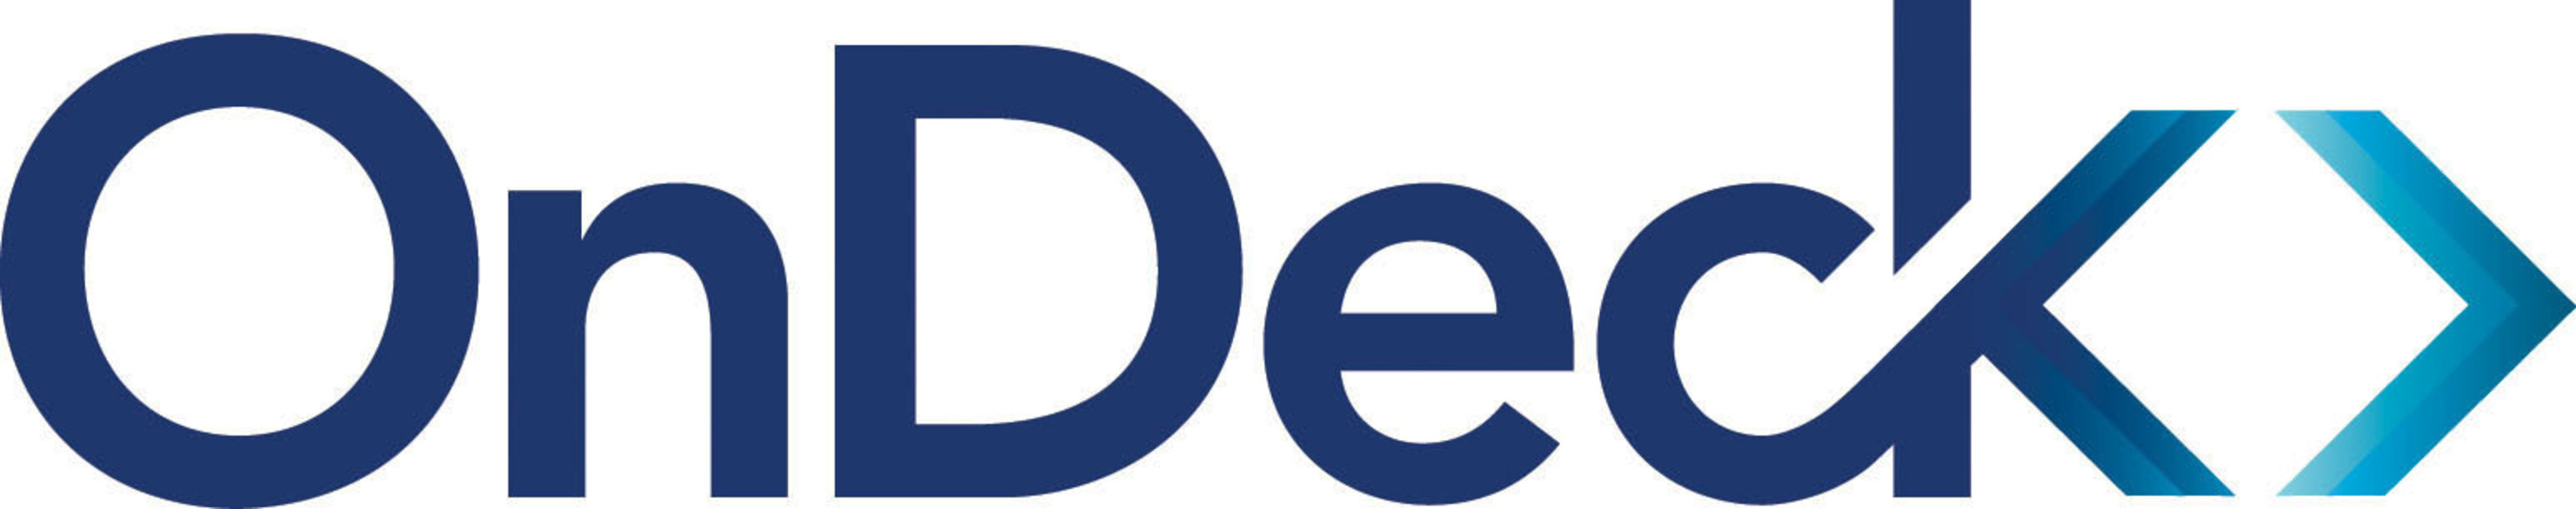 ondeck investor relations Leading U.S. Small Business Lender OnDeck Expands To Australia